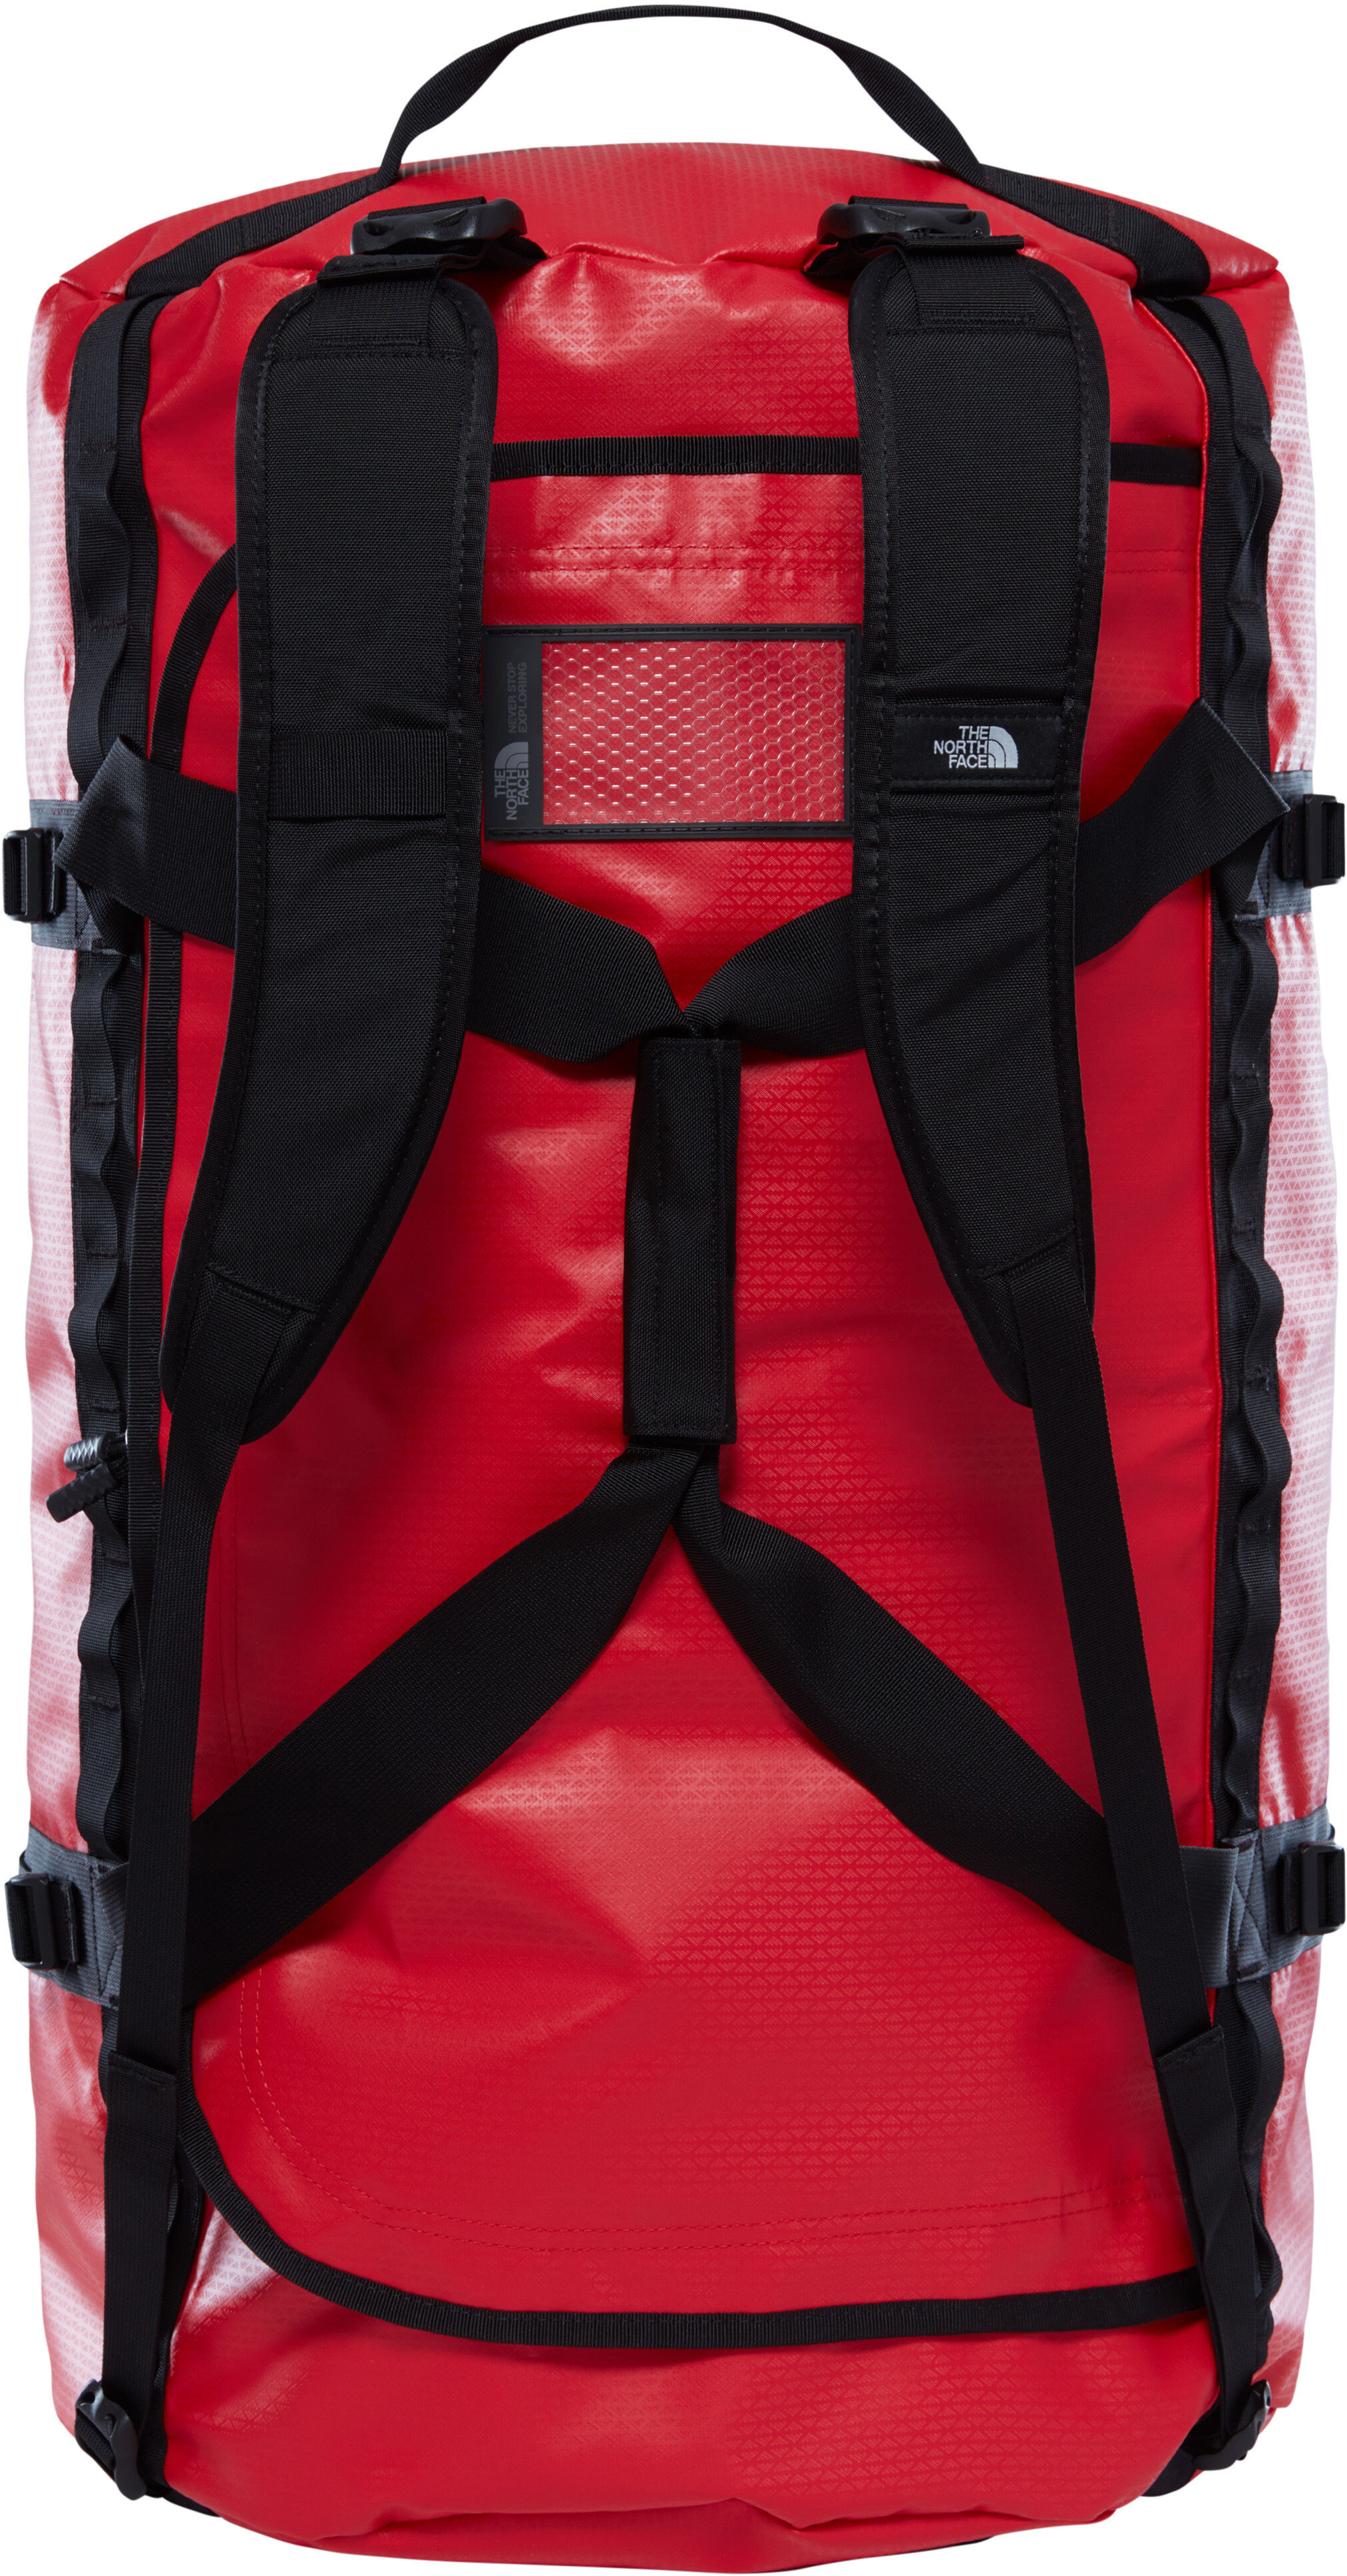 meilleure sélection 862a6 03be9 The North Face Base Camp Sac XL, tnf red/tnf black